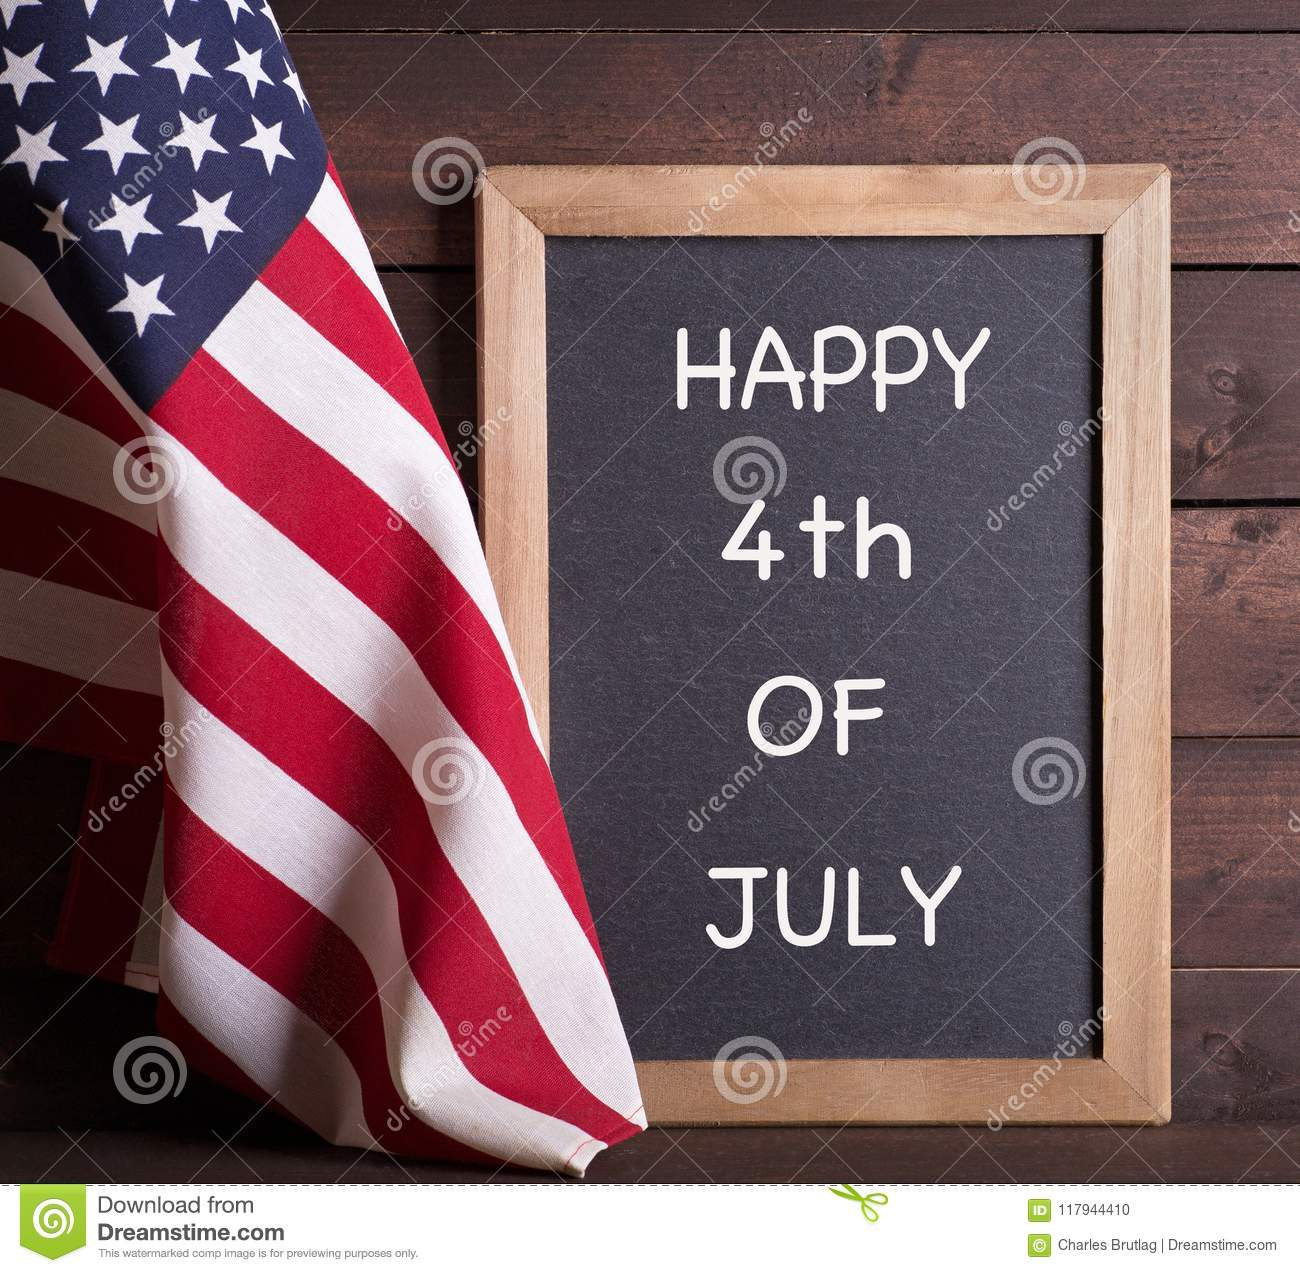 HAPPY 4th OF JULY Sign And The American Flag Stock Photo